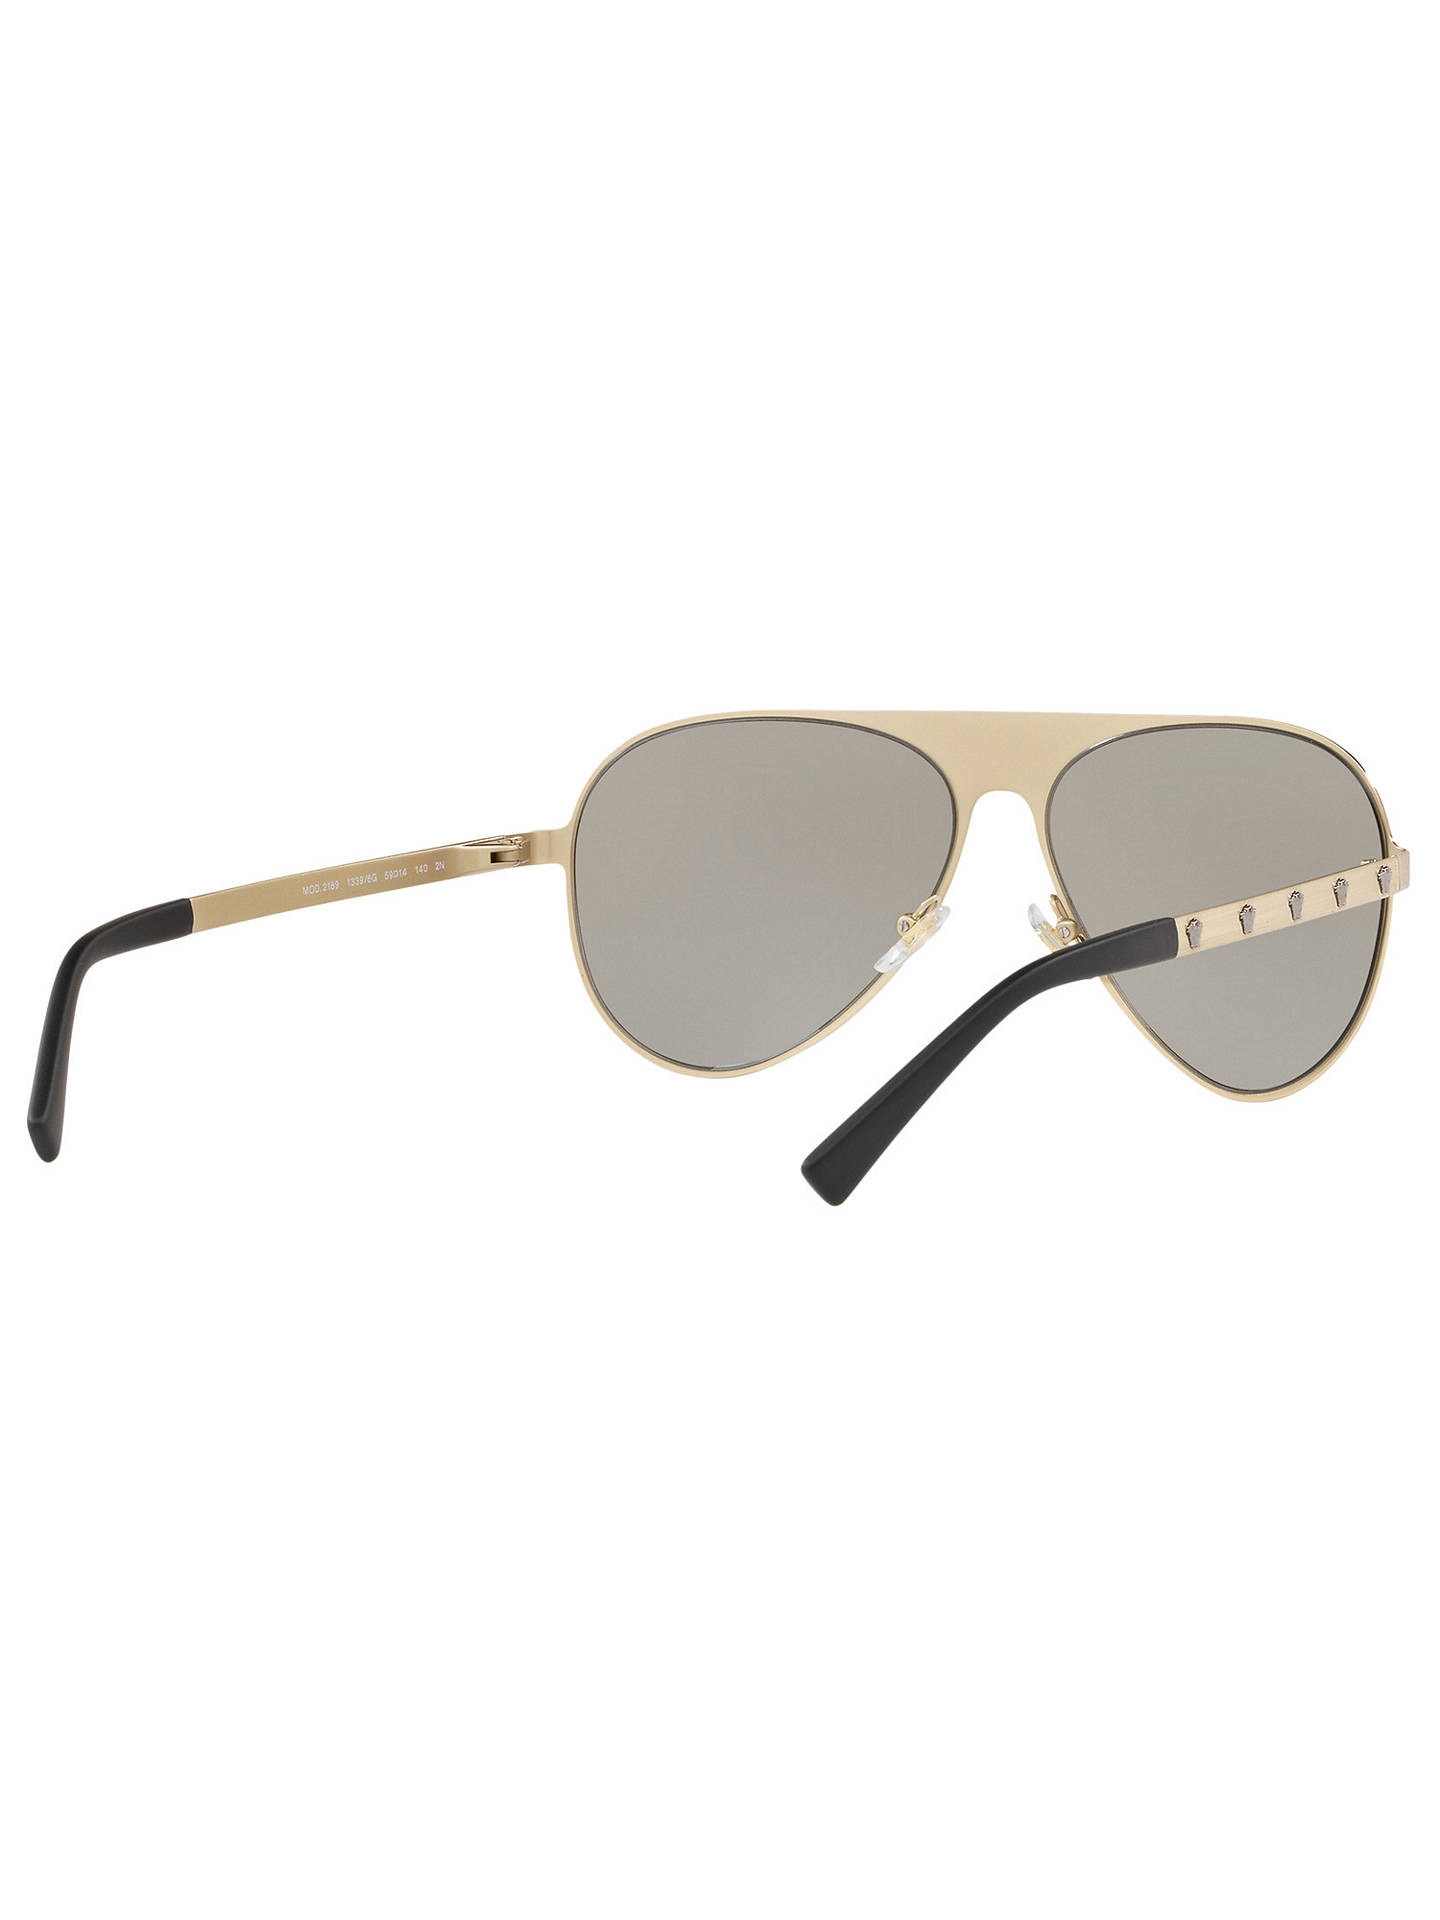 c7053b4e1453 ... Buy Versace VE2189 Unisex Polarised Embellished Aviator Sunglasses,  Pale Gold/Light Brown Online at ...